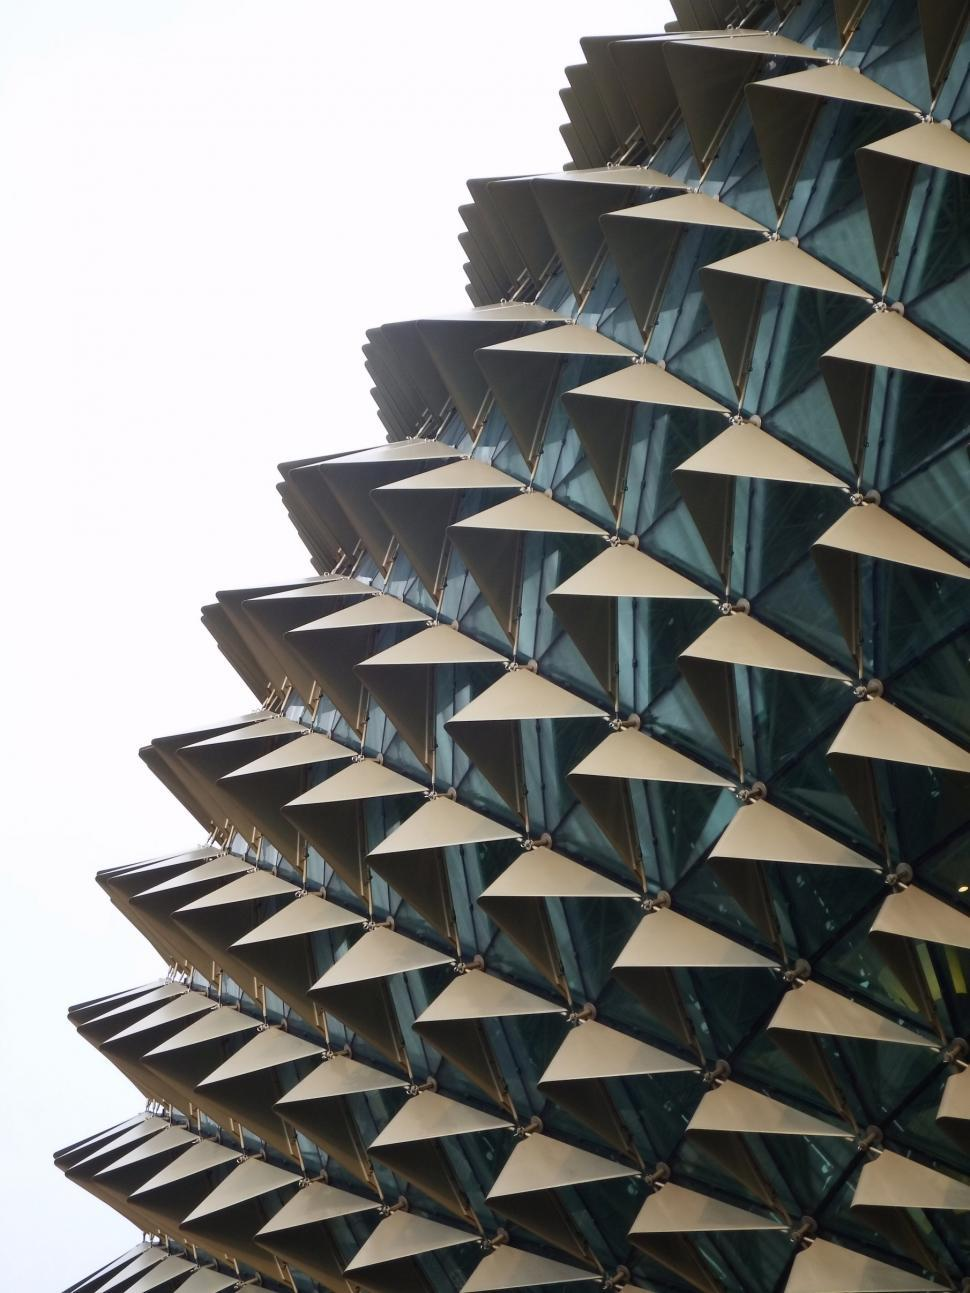 Download Free Stock Photo of Spiky Architecture